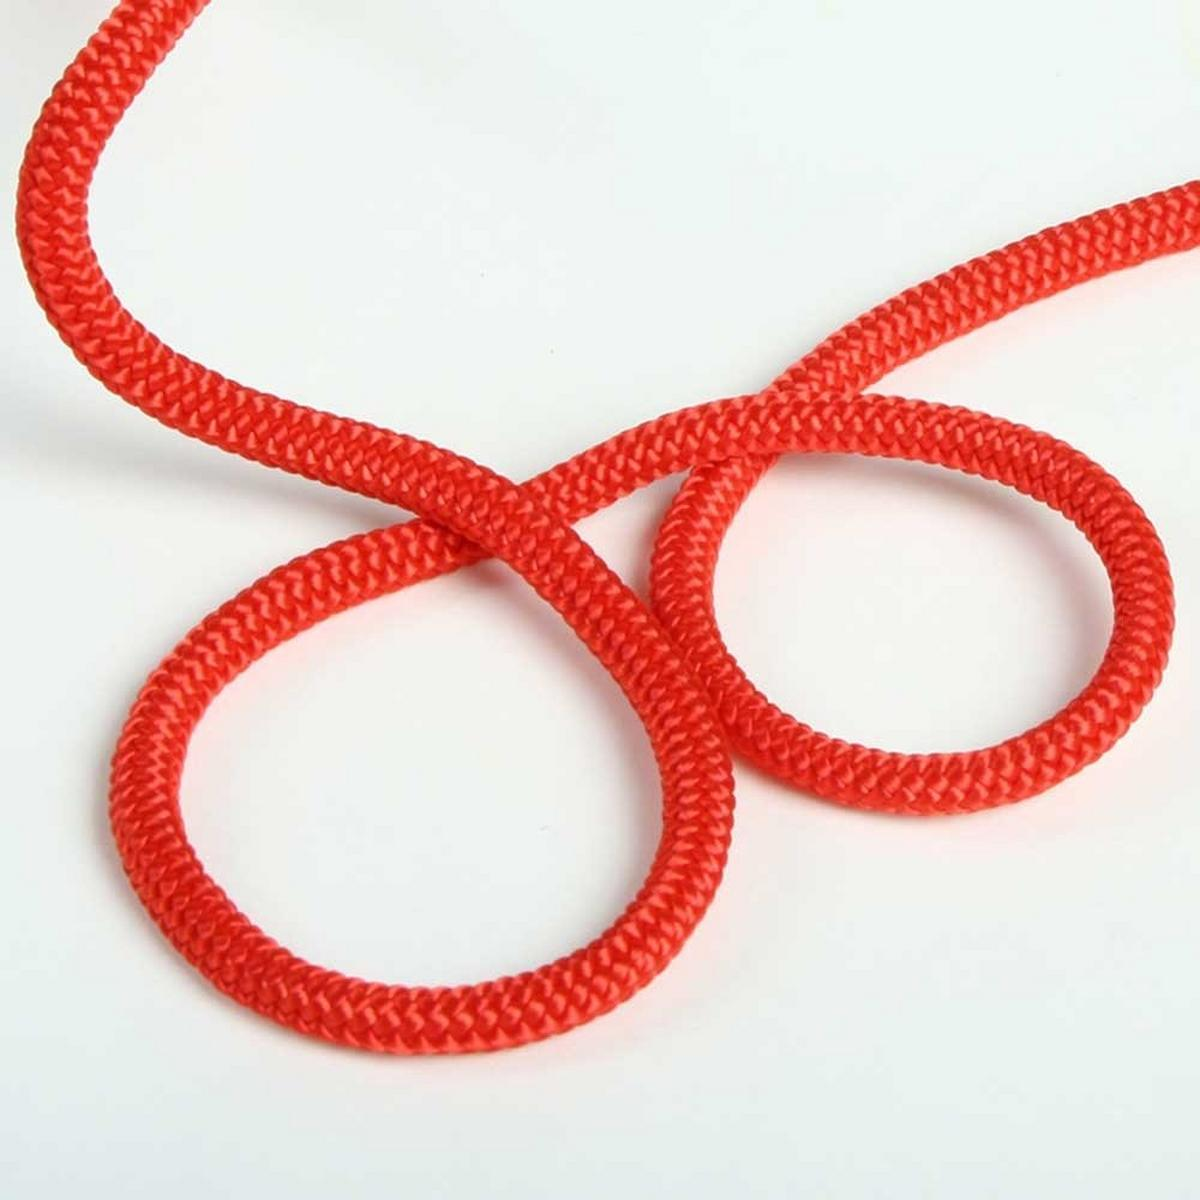 Edelweis 3mm x 10m Rope - Red